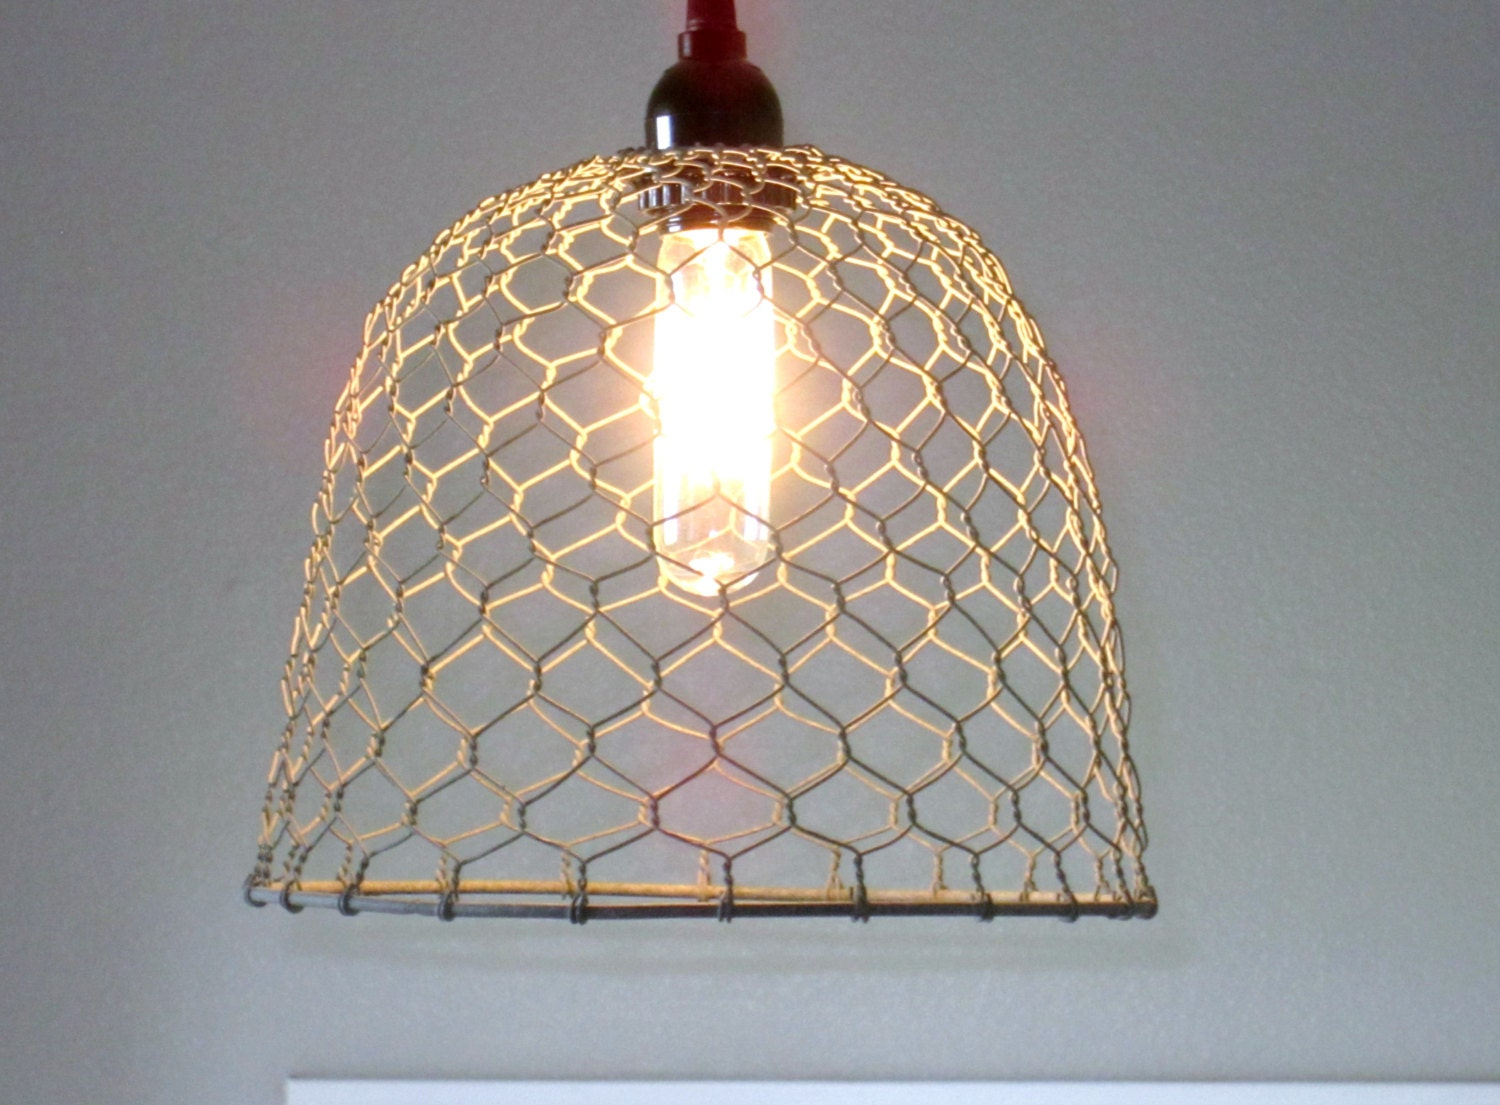 Rustic pendant lighting chicken wire farmhouse pendant zoom aloadofball Gallery